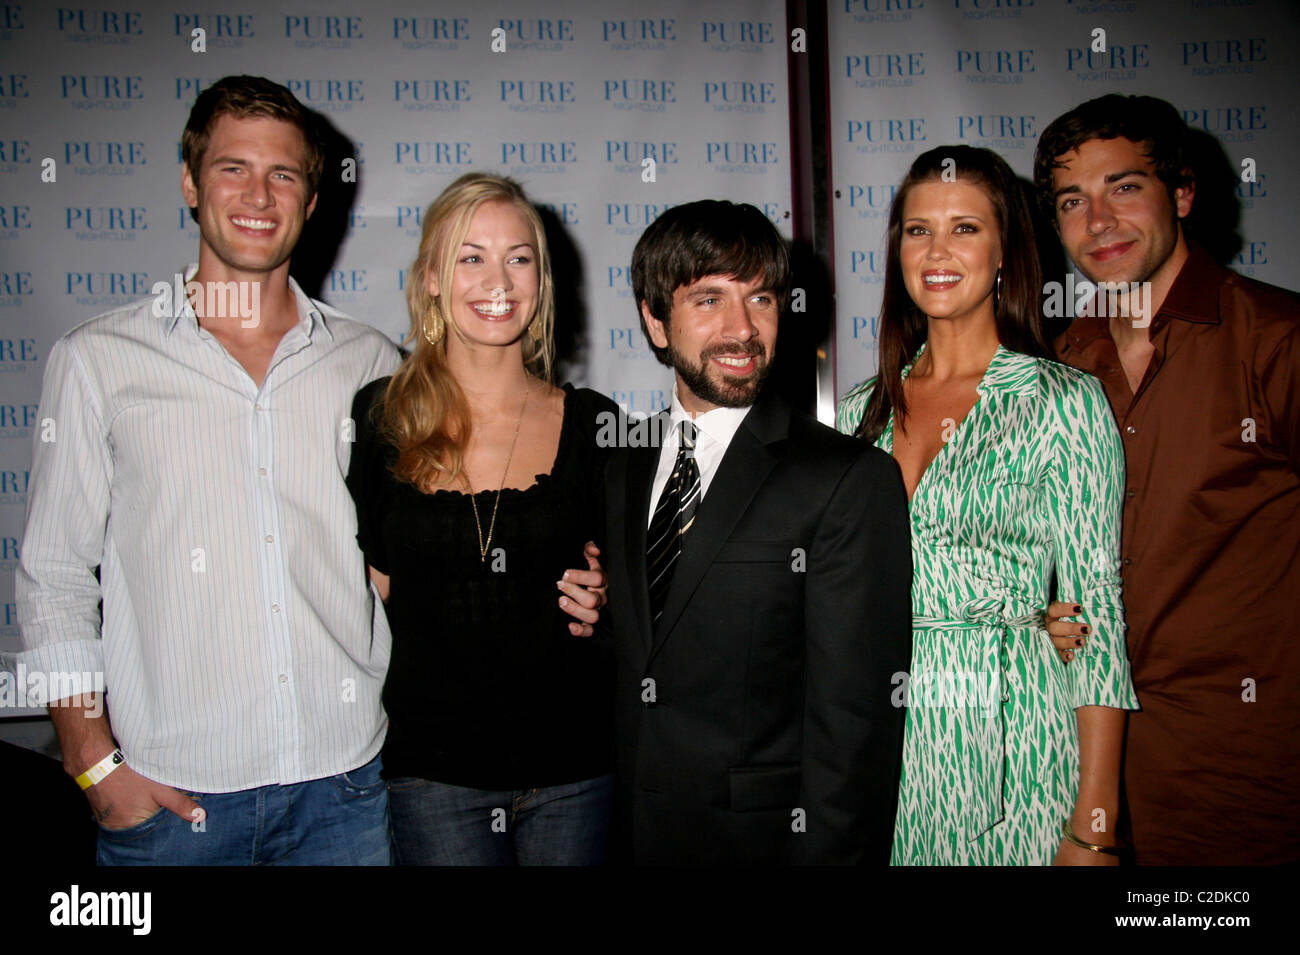 Ryan Mcpartlin Yvonne Strahovski Joshua Gomez Sarah Lancaster And Stock Photo Alamy They are attempting to use clues left behind by chuck's. https www alamy com stock photo ryan mcpartlin yvonne strahovski joshua gomez sarah lancaster and 35950656 html